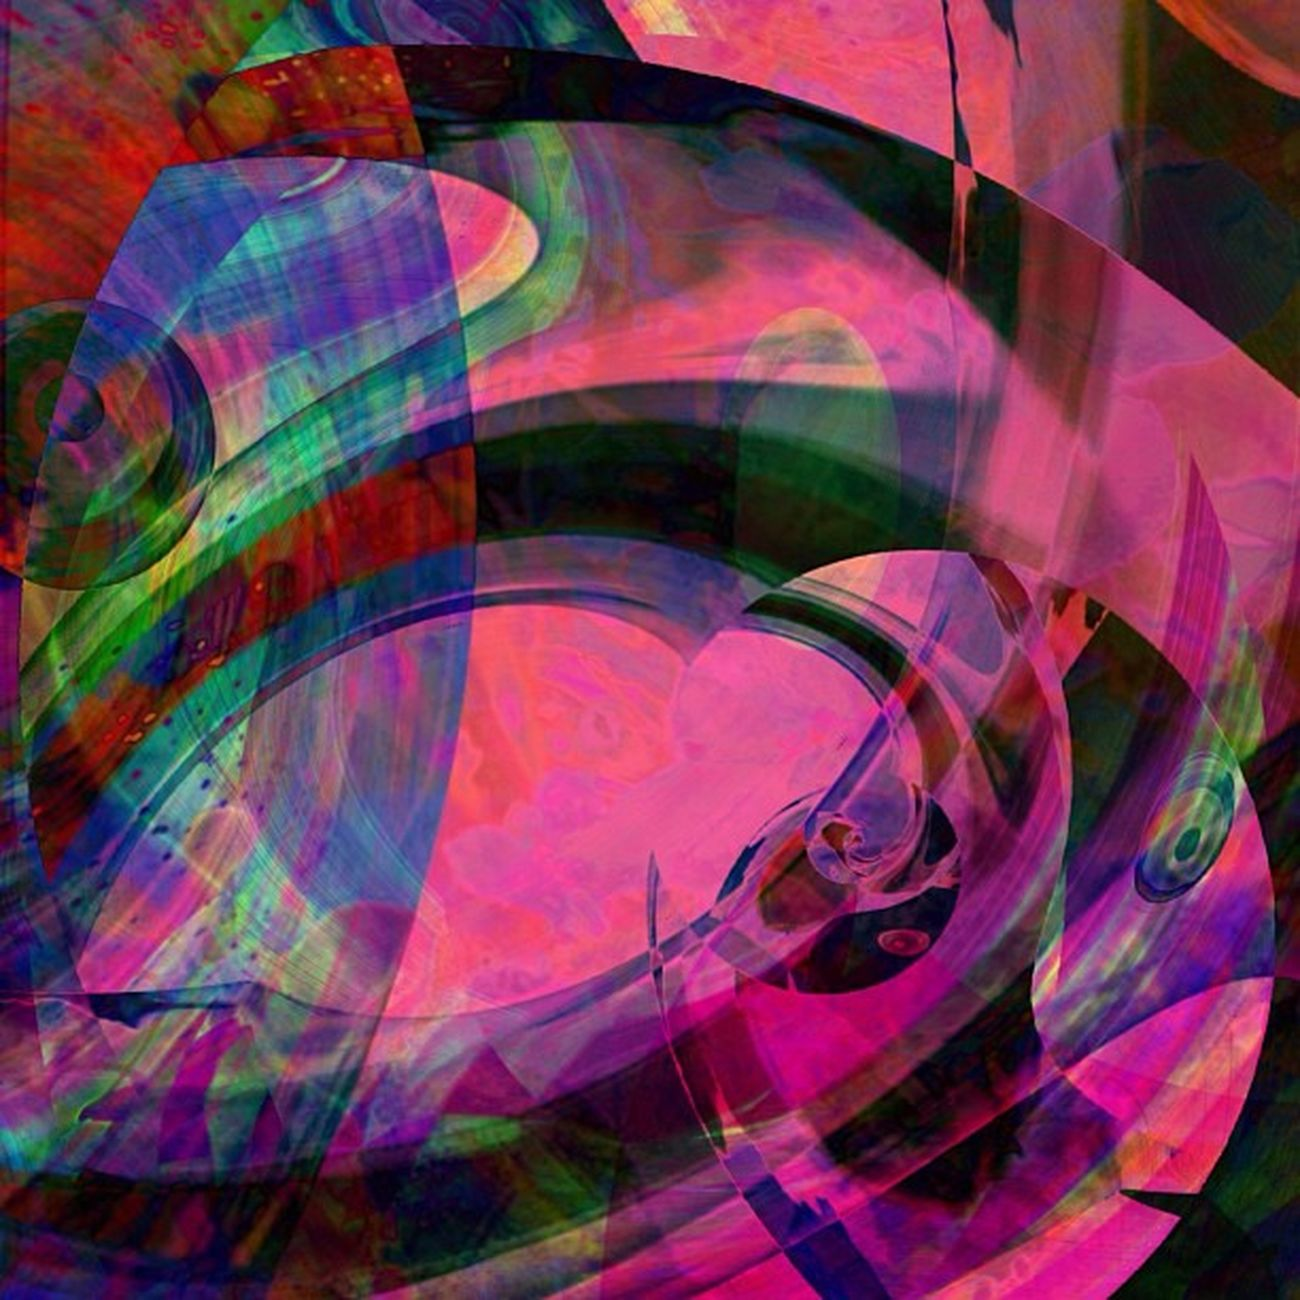 Star-Crossed Rapture Icatching Ig_artistry Abstracto Colour_religion Amselcom Photo_religion Mobileartistry Edit_religion Icolorama Colourconf Instauno Colorworld Igsg Abstractaddict Abstractporn Colourmehappy Abstractlove Colorszone Photoblipoint Abstractions Colorporn Abstractdesign Ig_artgallery Gang_gamily Ace_ Deadlydivas